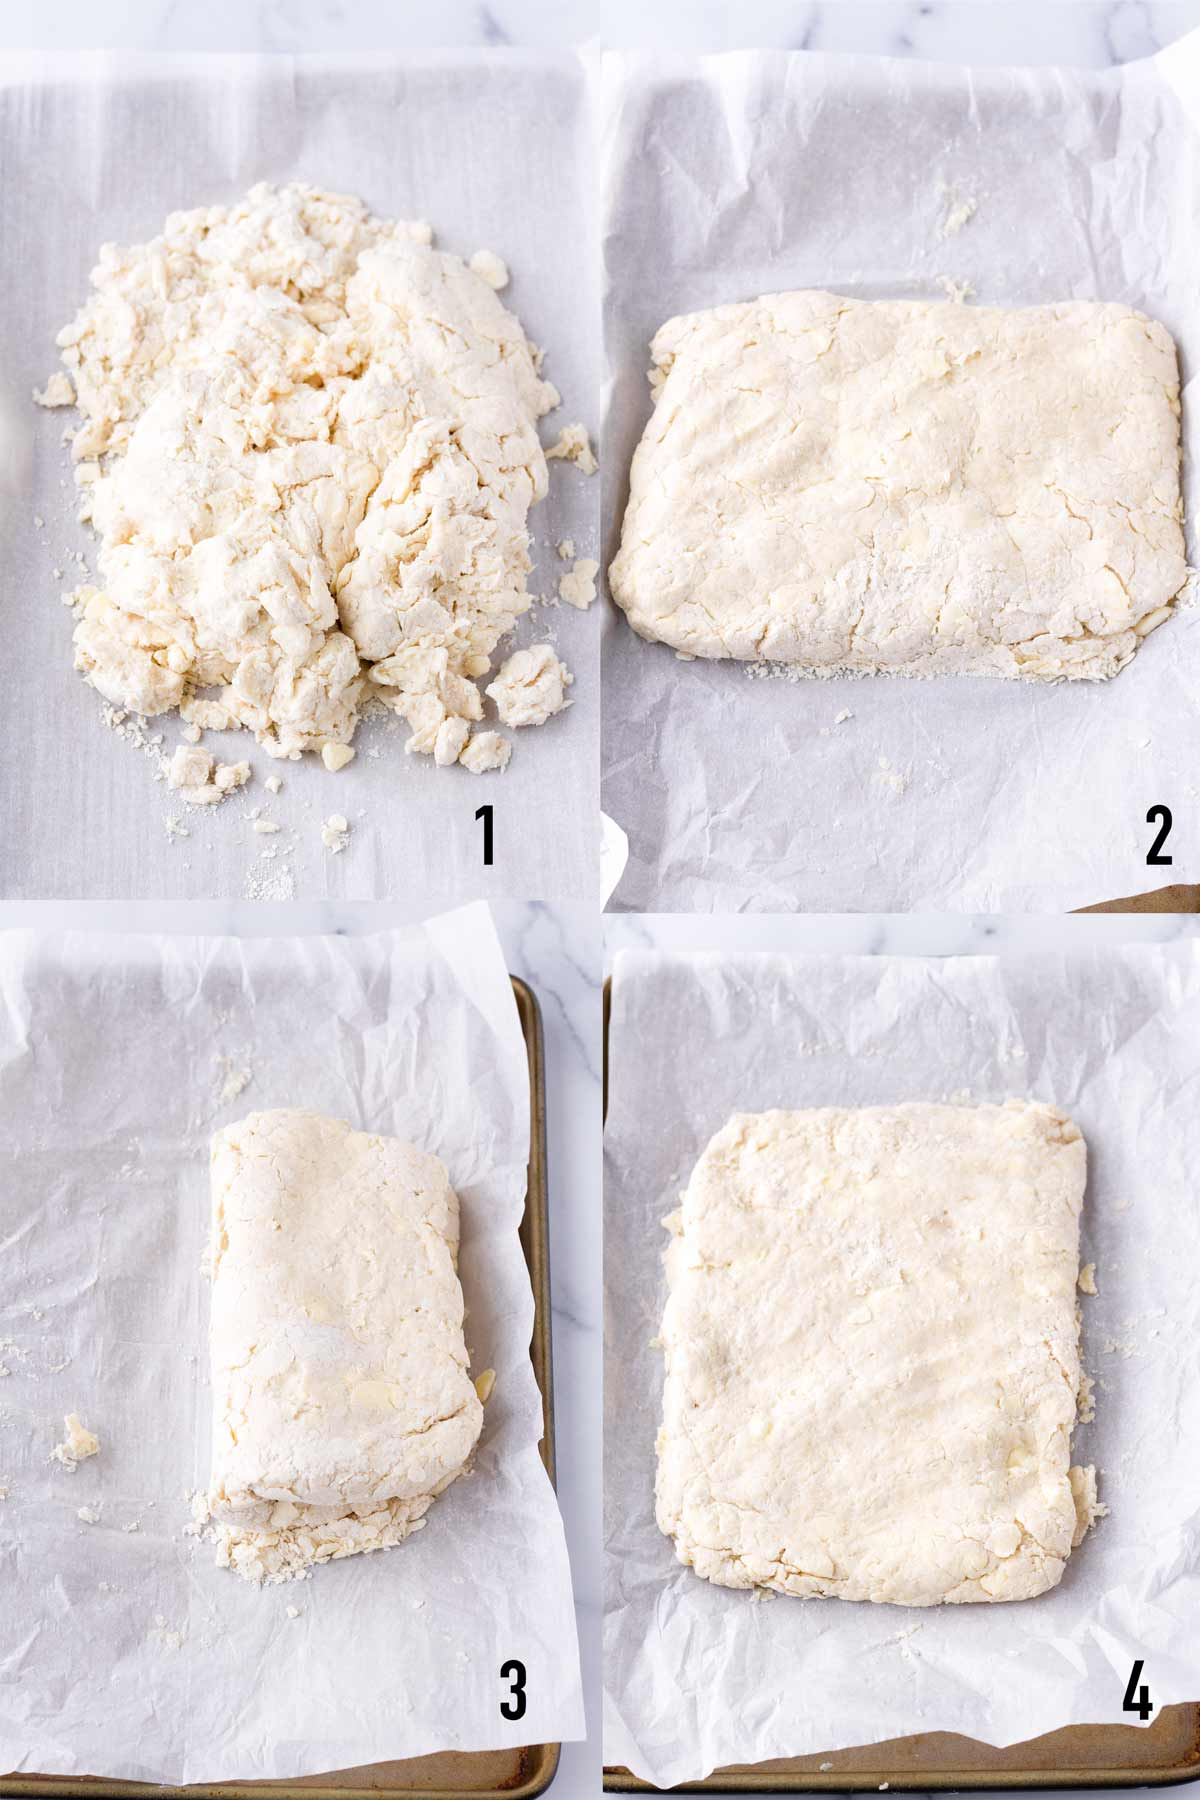 demonstrating how to work the dough to make biscuits